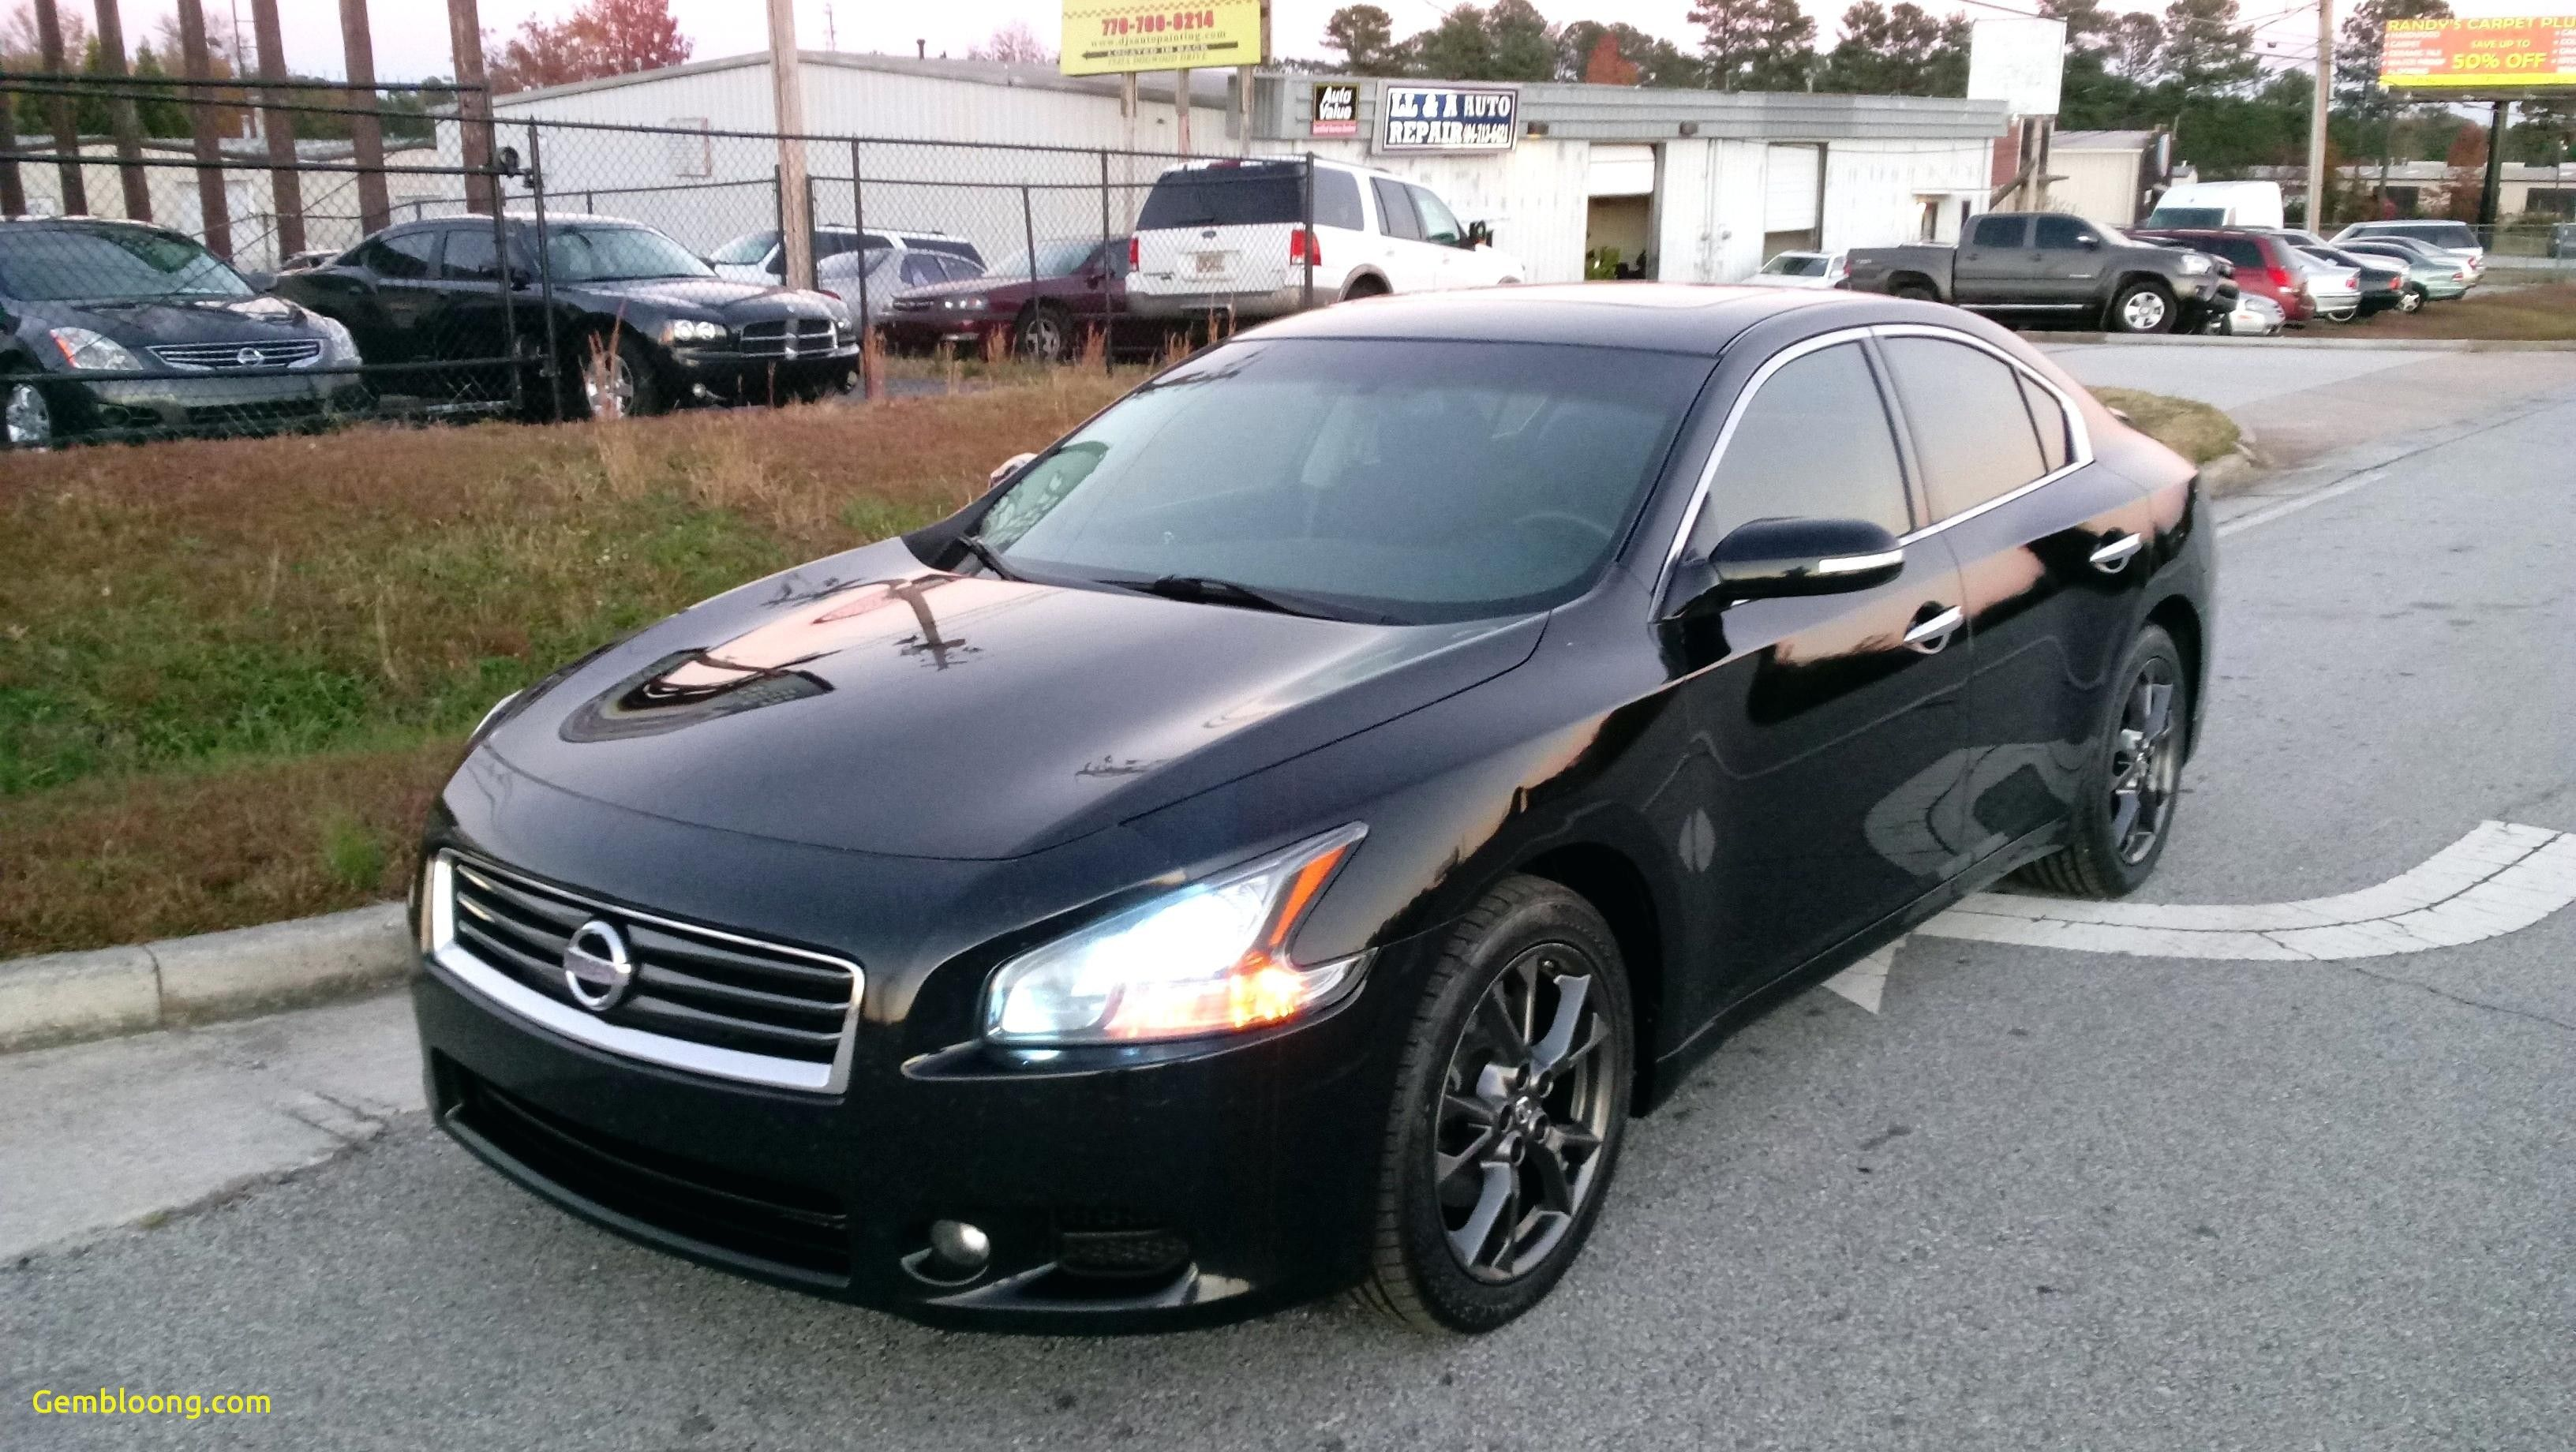 Fresh Cars for Sale Near to Me